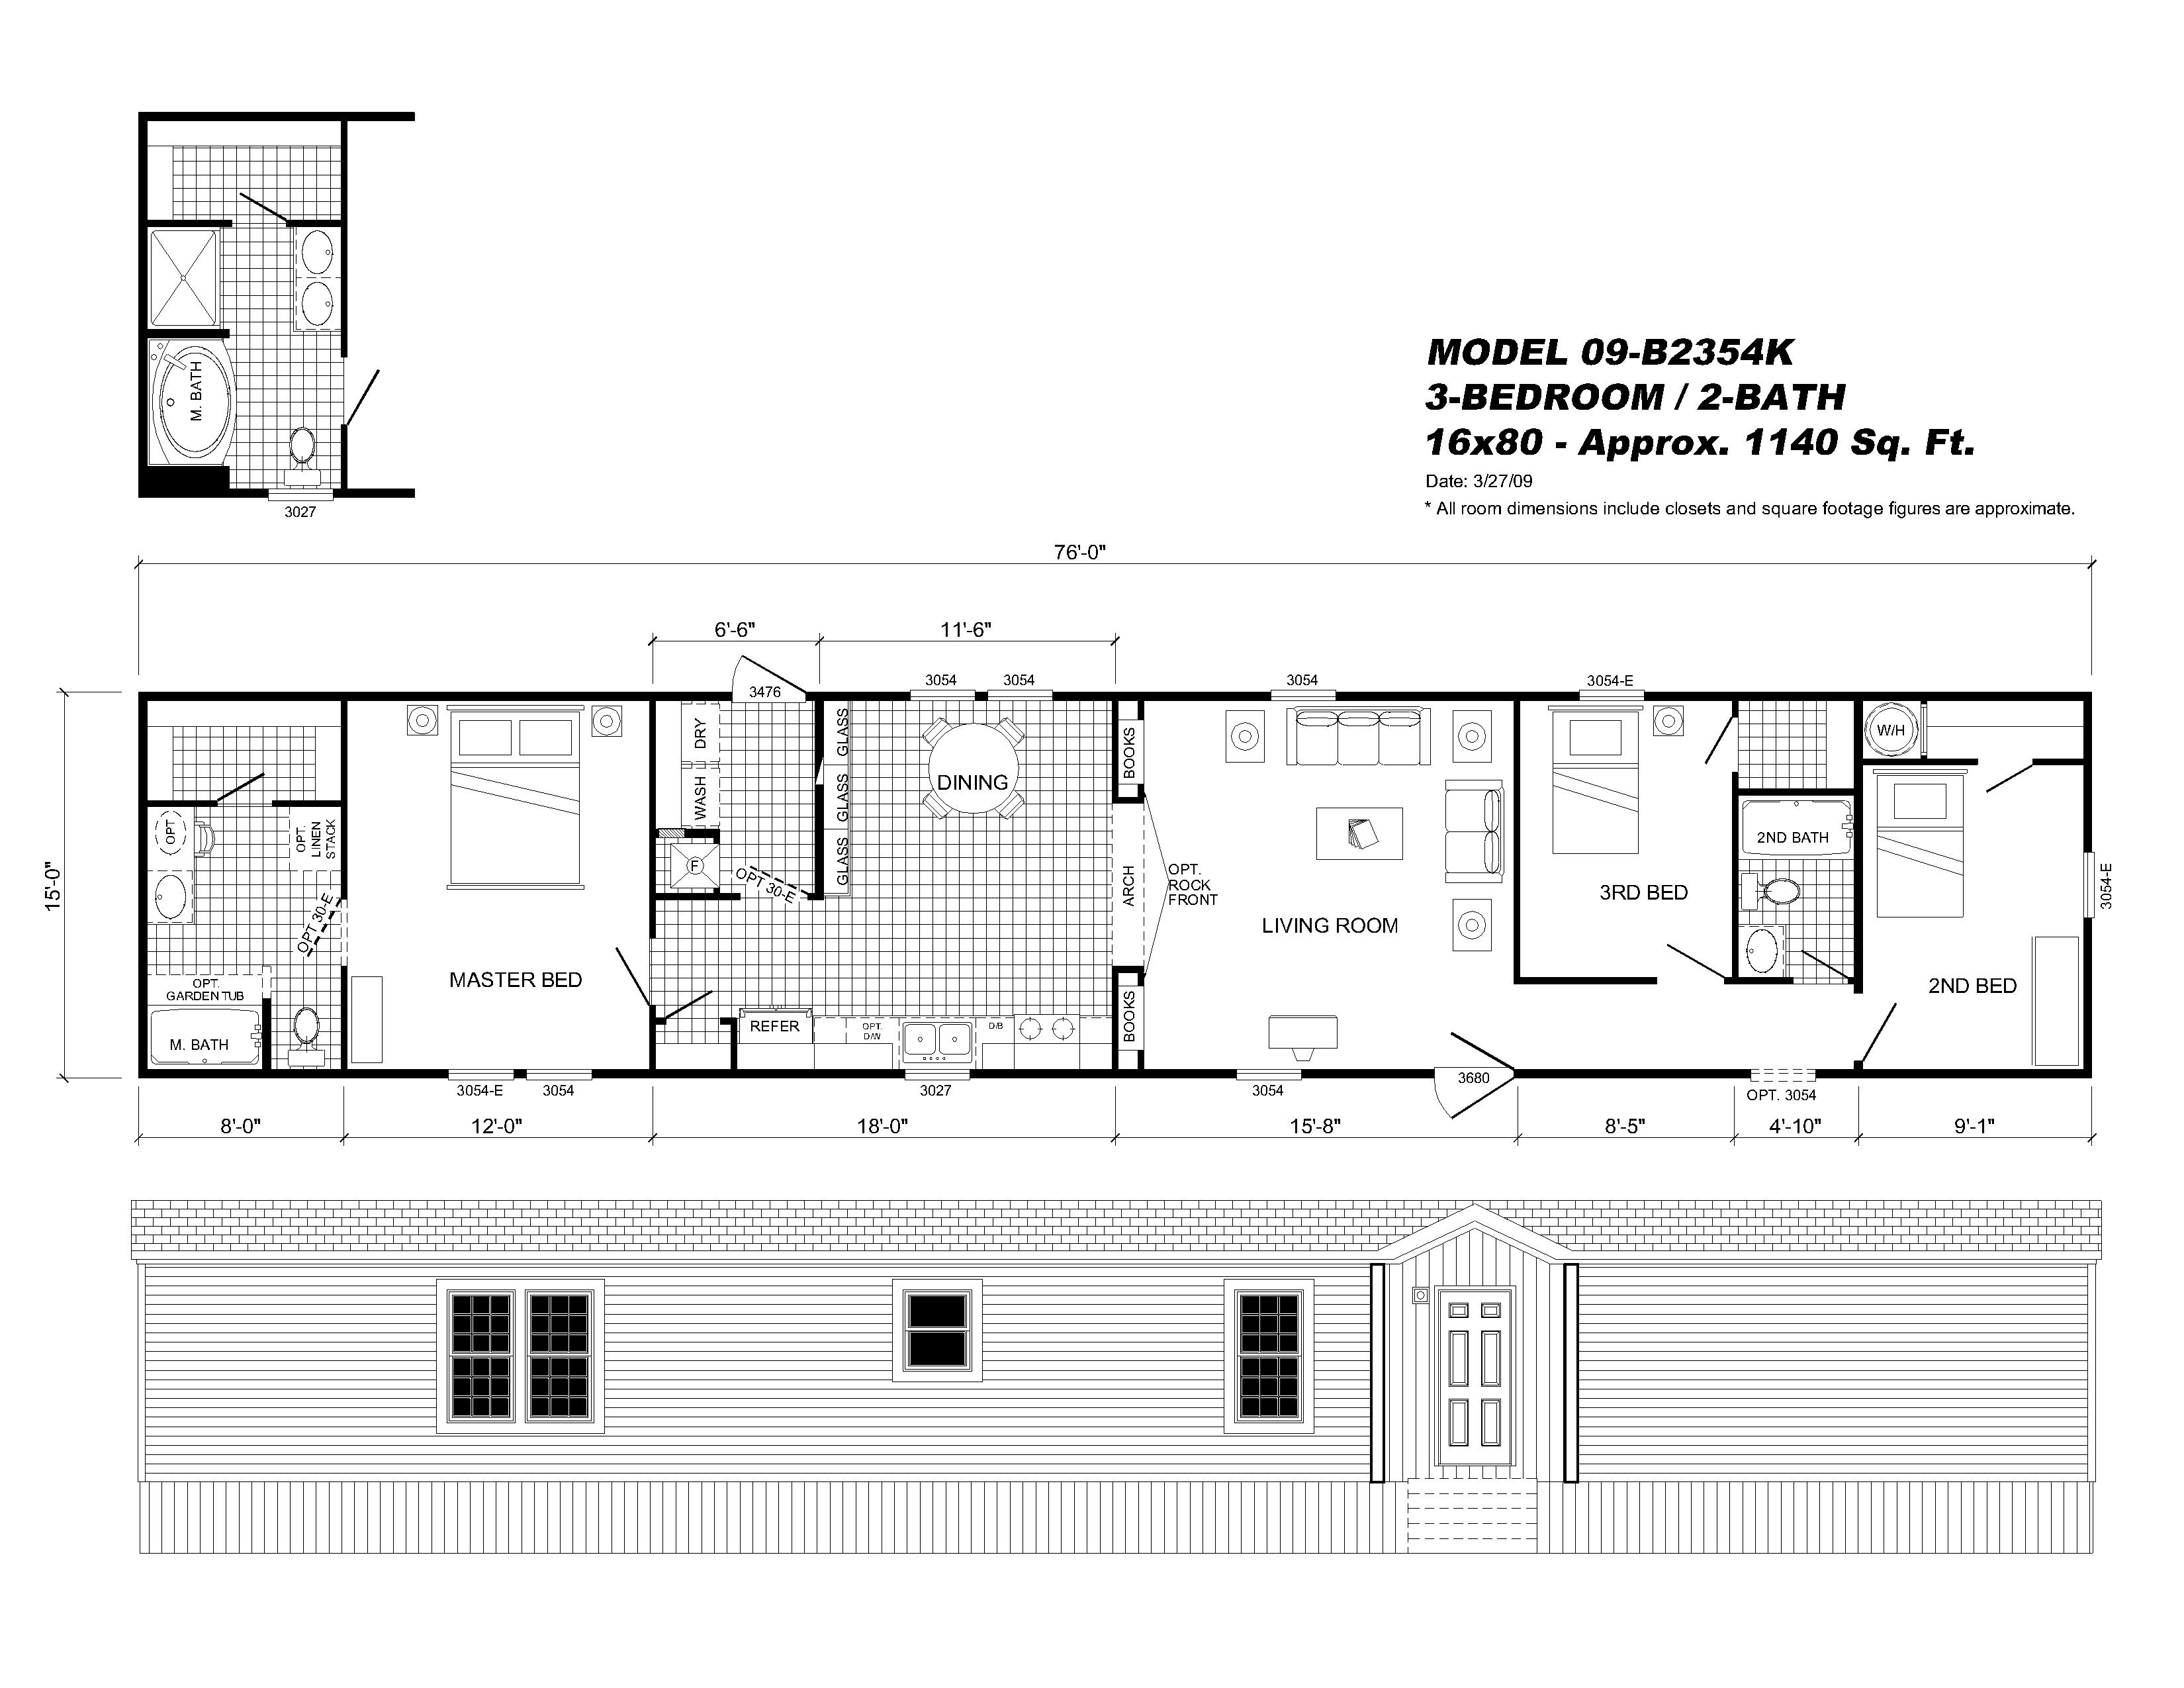 Redman Single Wide Mobile Home Floor Plans Homes Bus Rv Container Ideas Small House Plus Mobile Home Floor Plans Single Wide Mobile Homes Single Wide Remodel